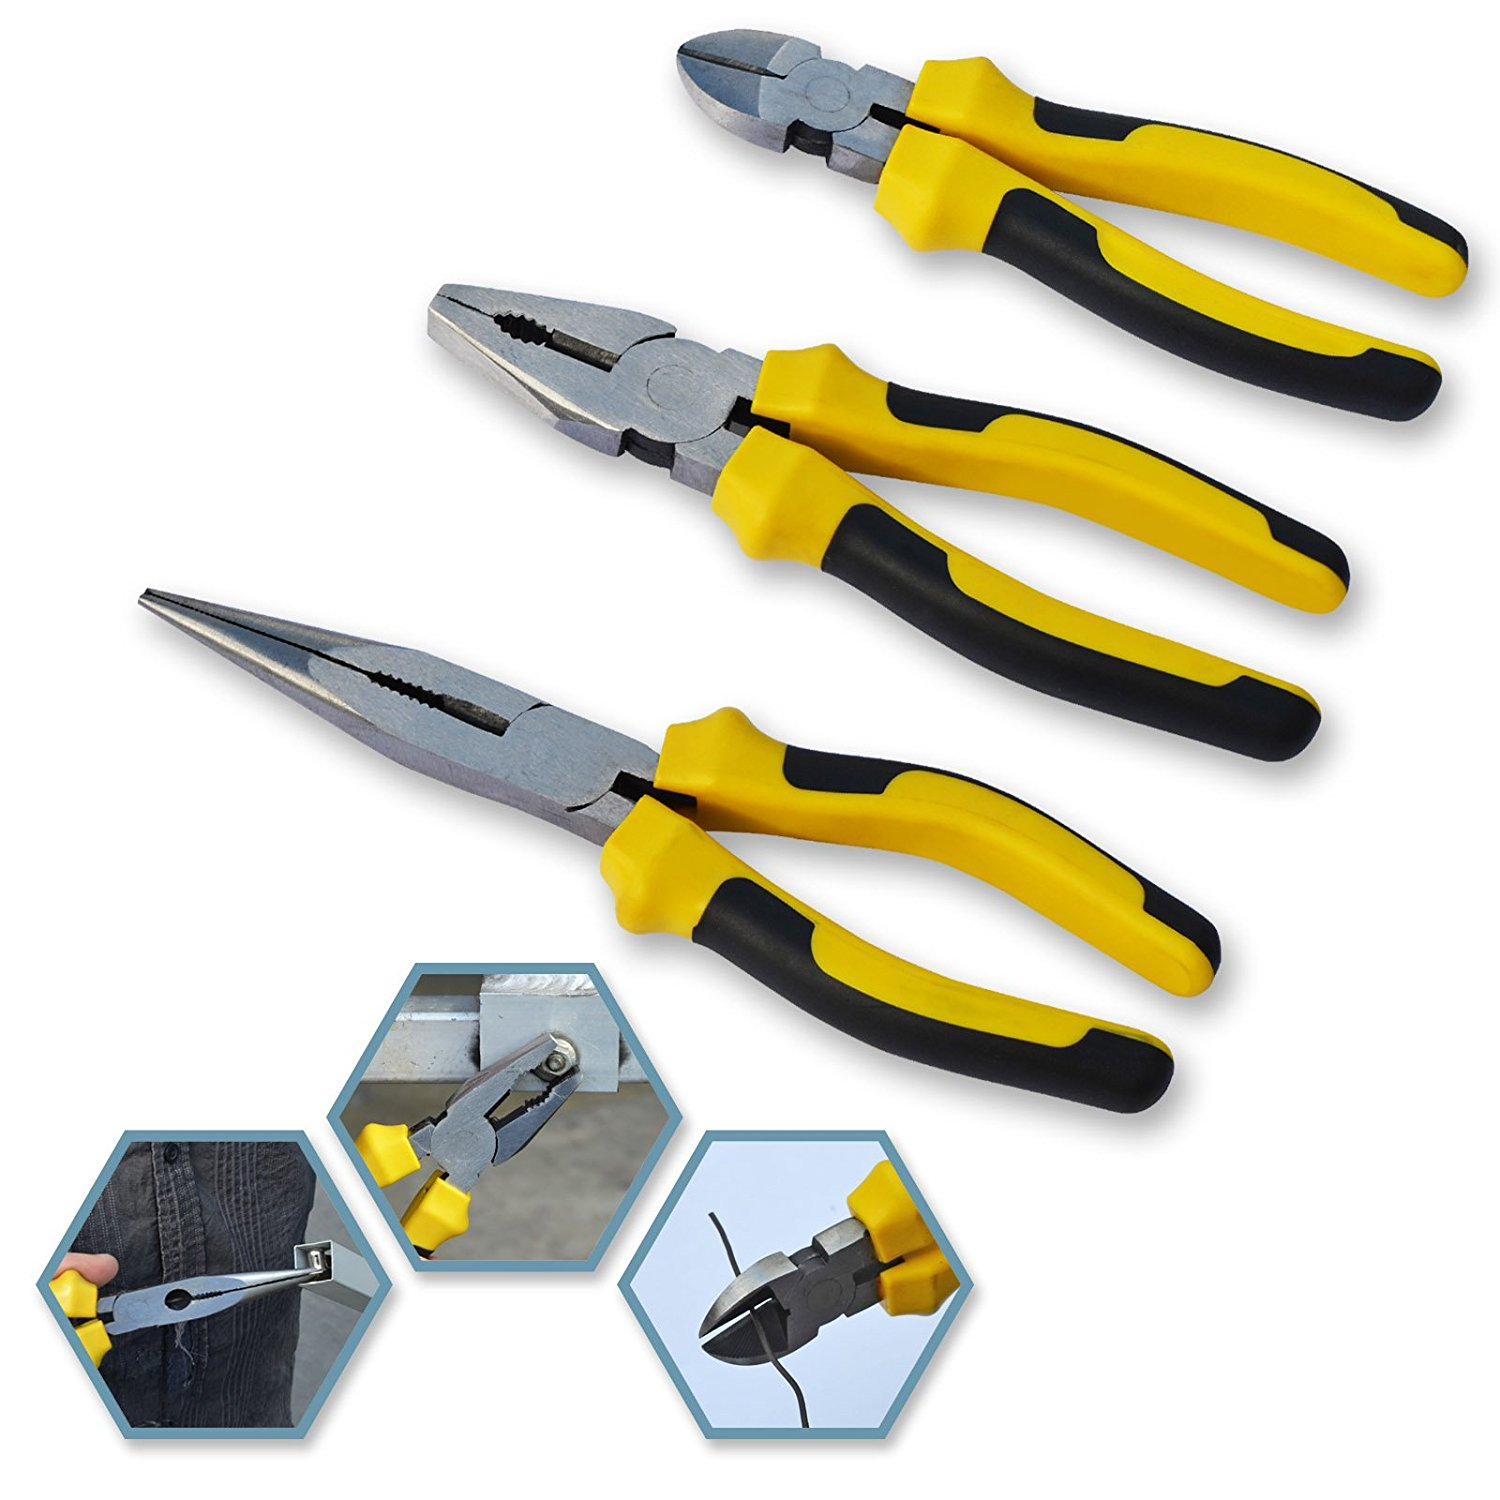 "Sunrise 3 PC Basic Plier Set 7"" Steel Wire Plier, 8"" Sharp Mouth Pliers, 6"" Oblique Mouth Plier Insulation Set"